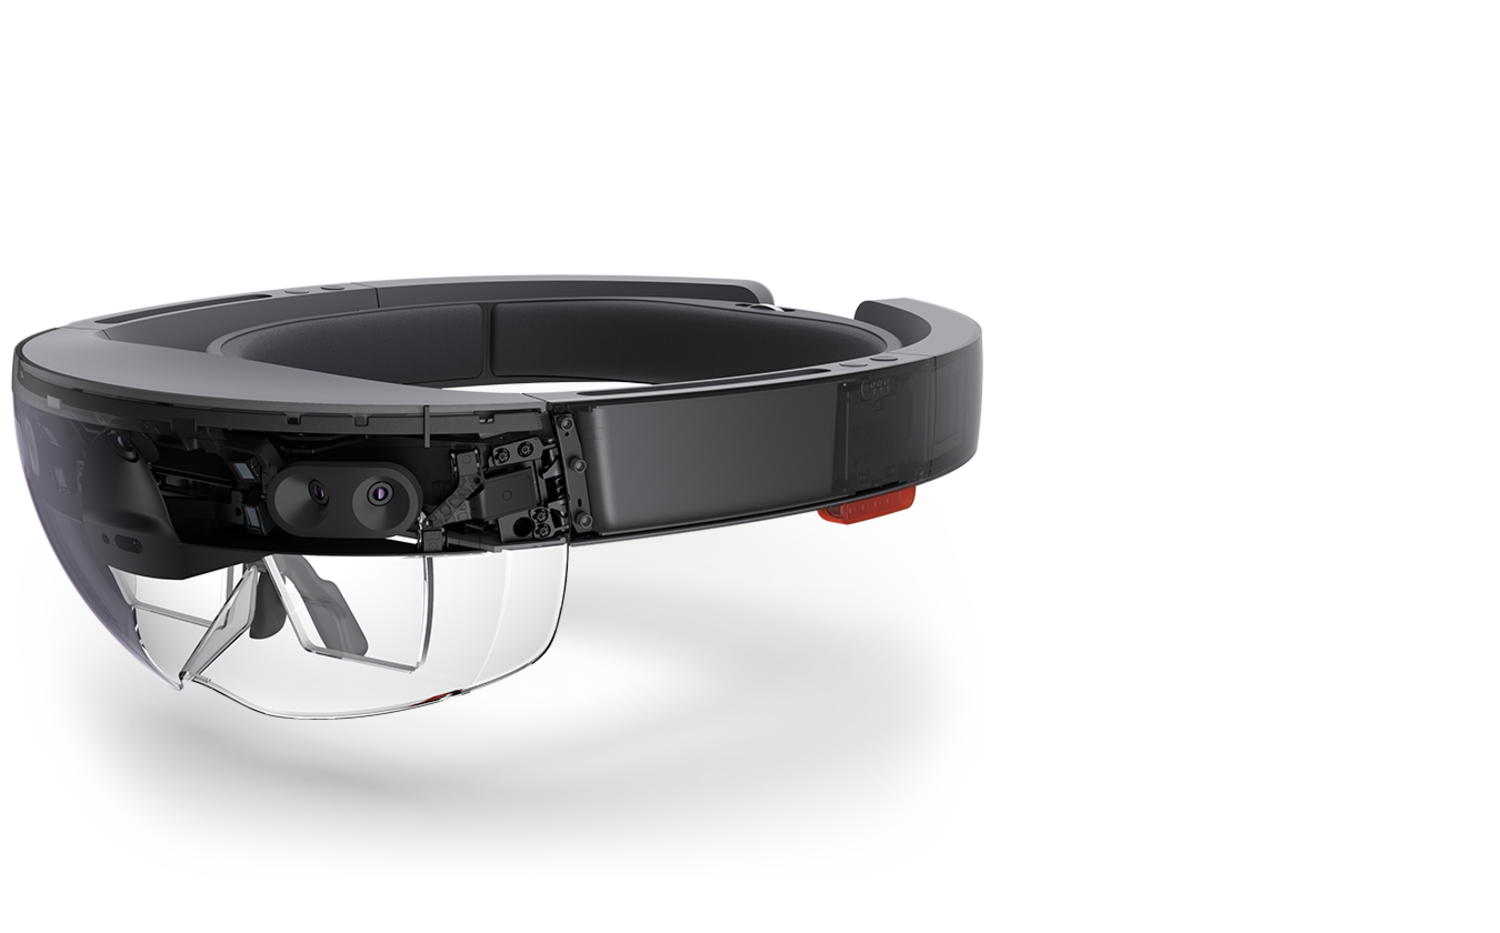 What Do We Know About The New Microsoft HoloLens Leaks?